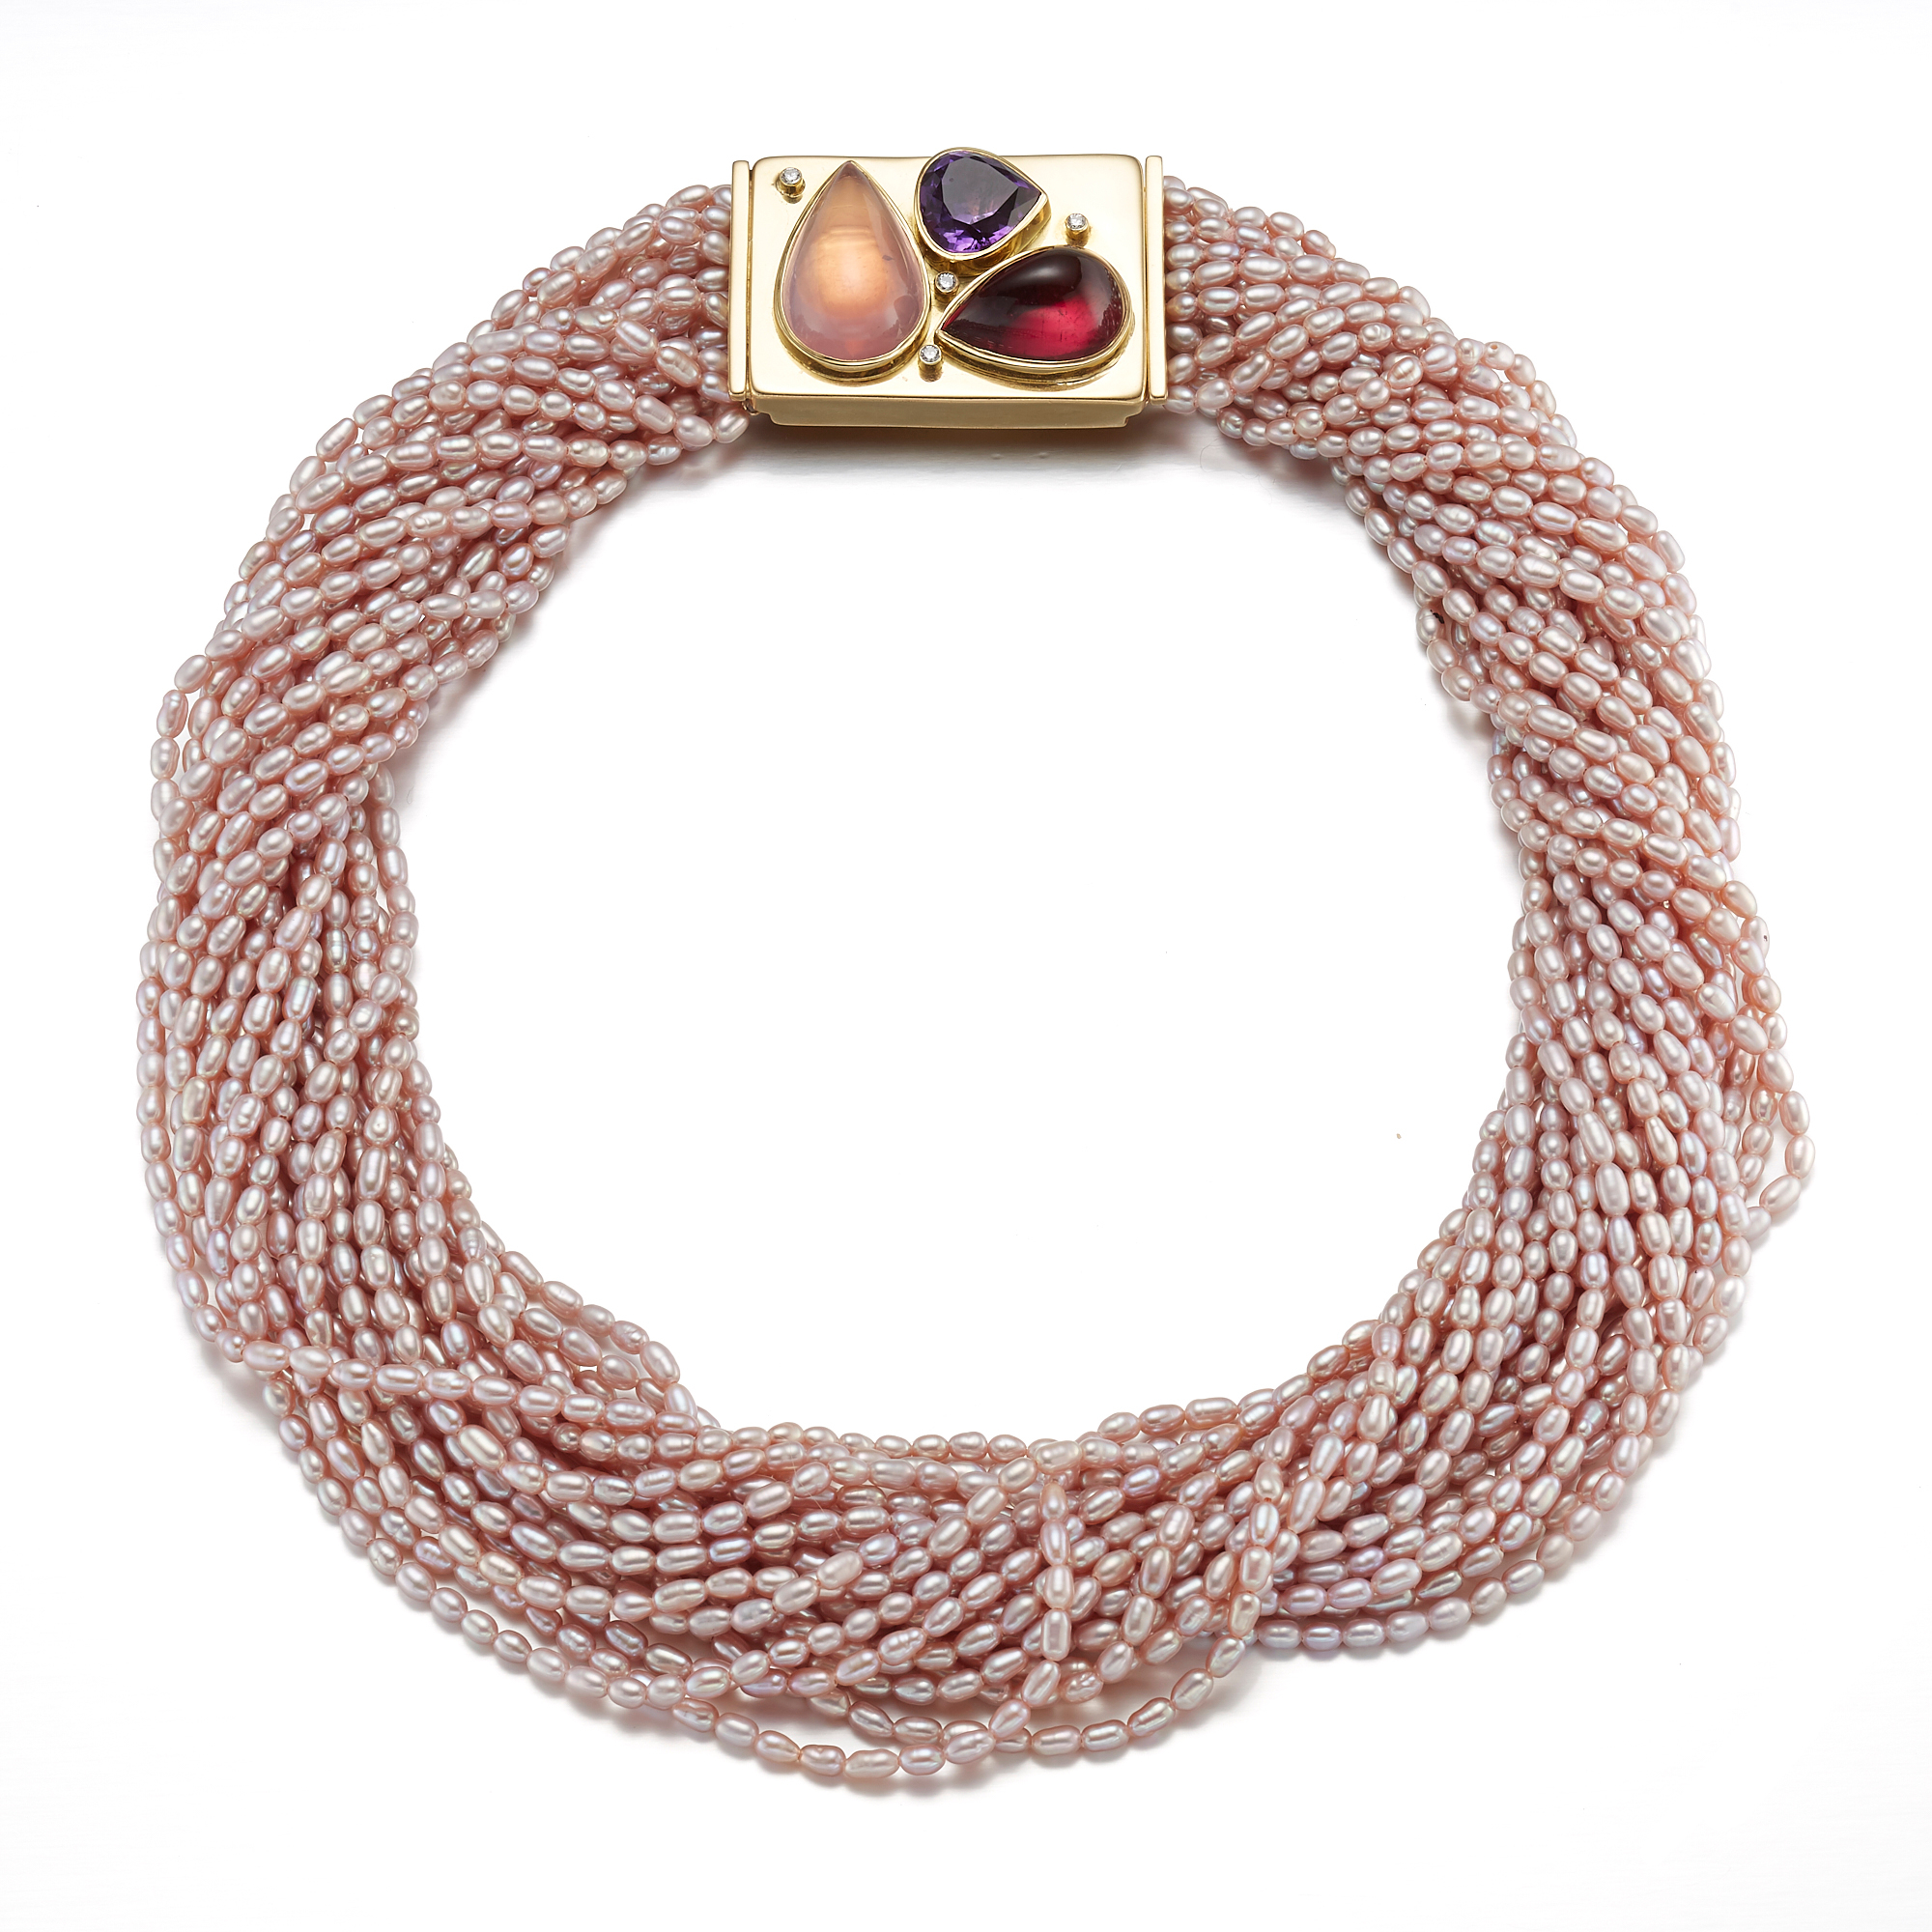 Gump's Multi-Strand Pink Pearl Necklace With Rubellite, Amethyst & Rose Quartz Clasp